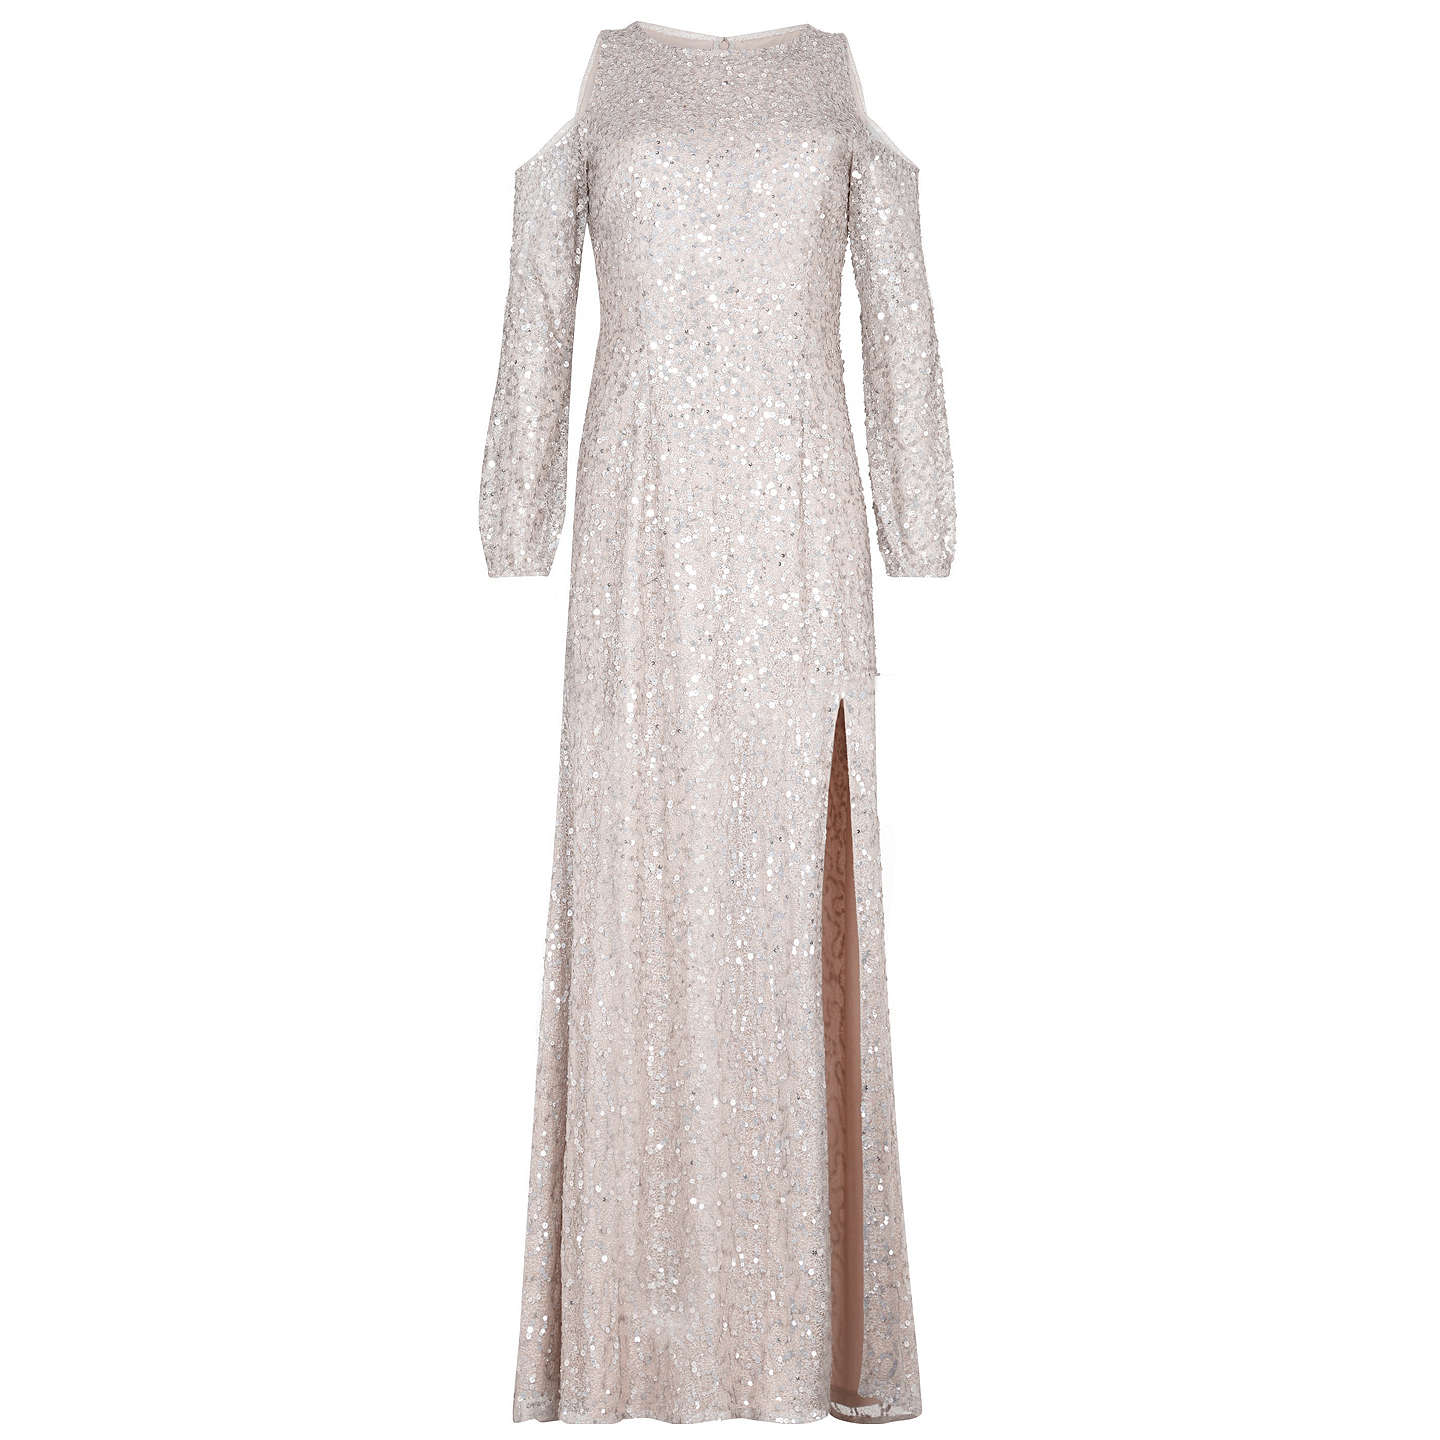 BuyAdrianna Papell Beaded Long Dress, Nude, 6 Online at johnlewis.com